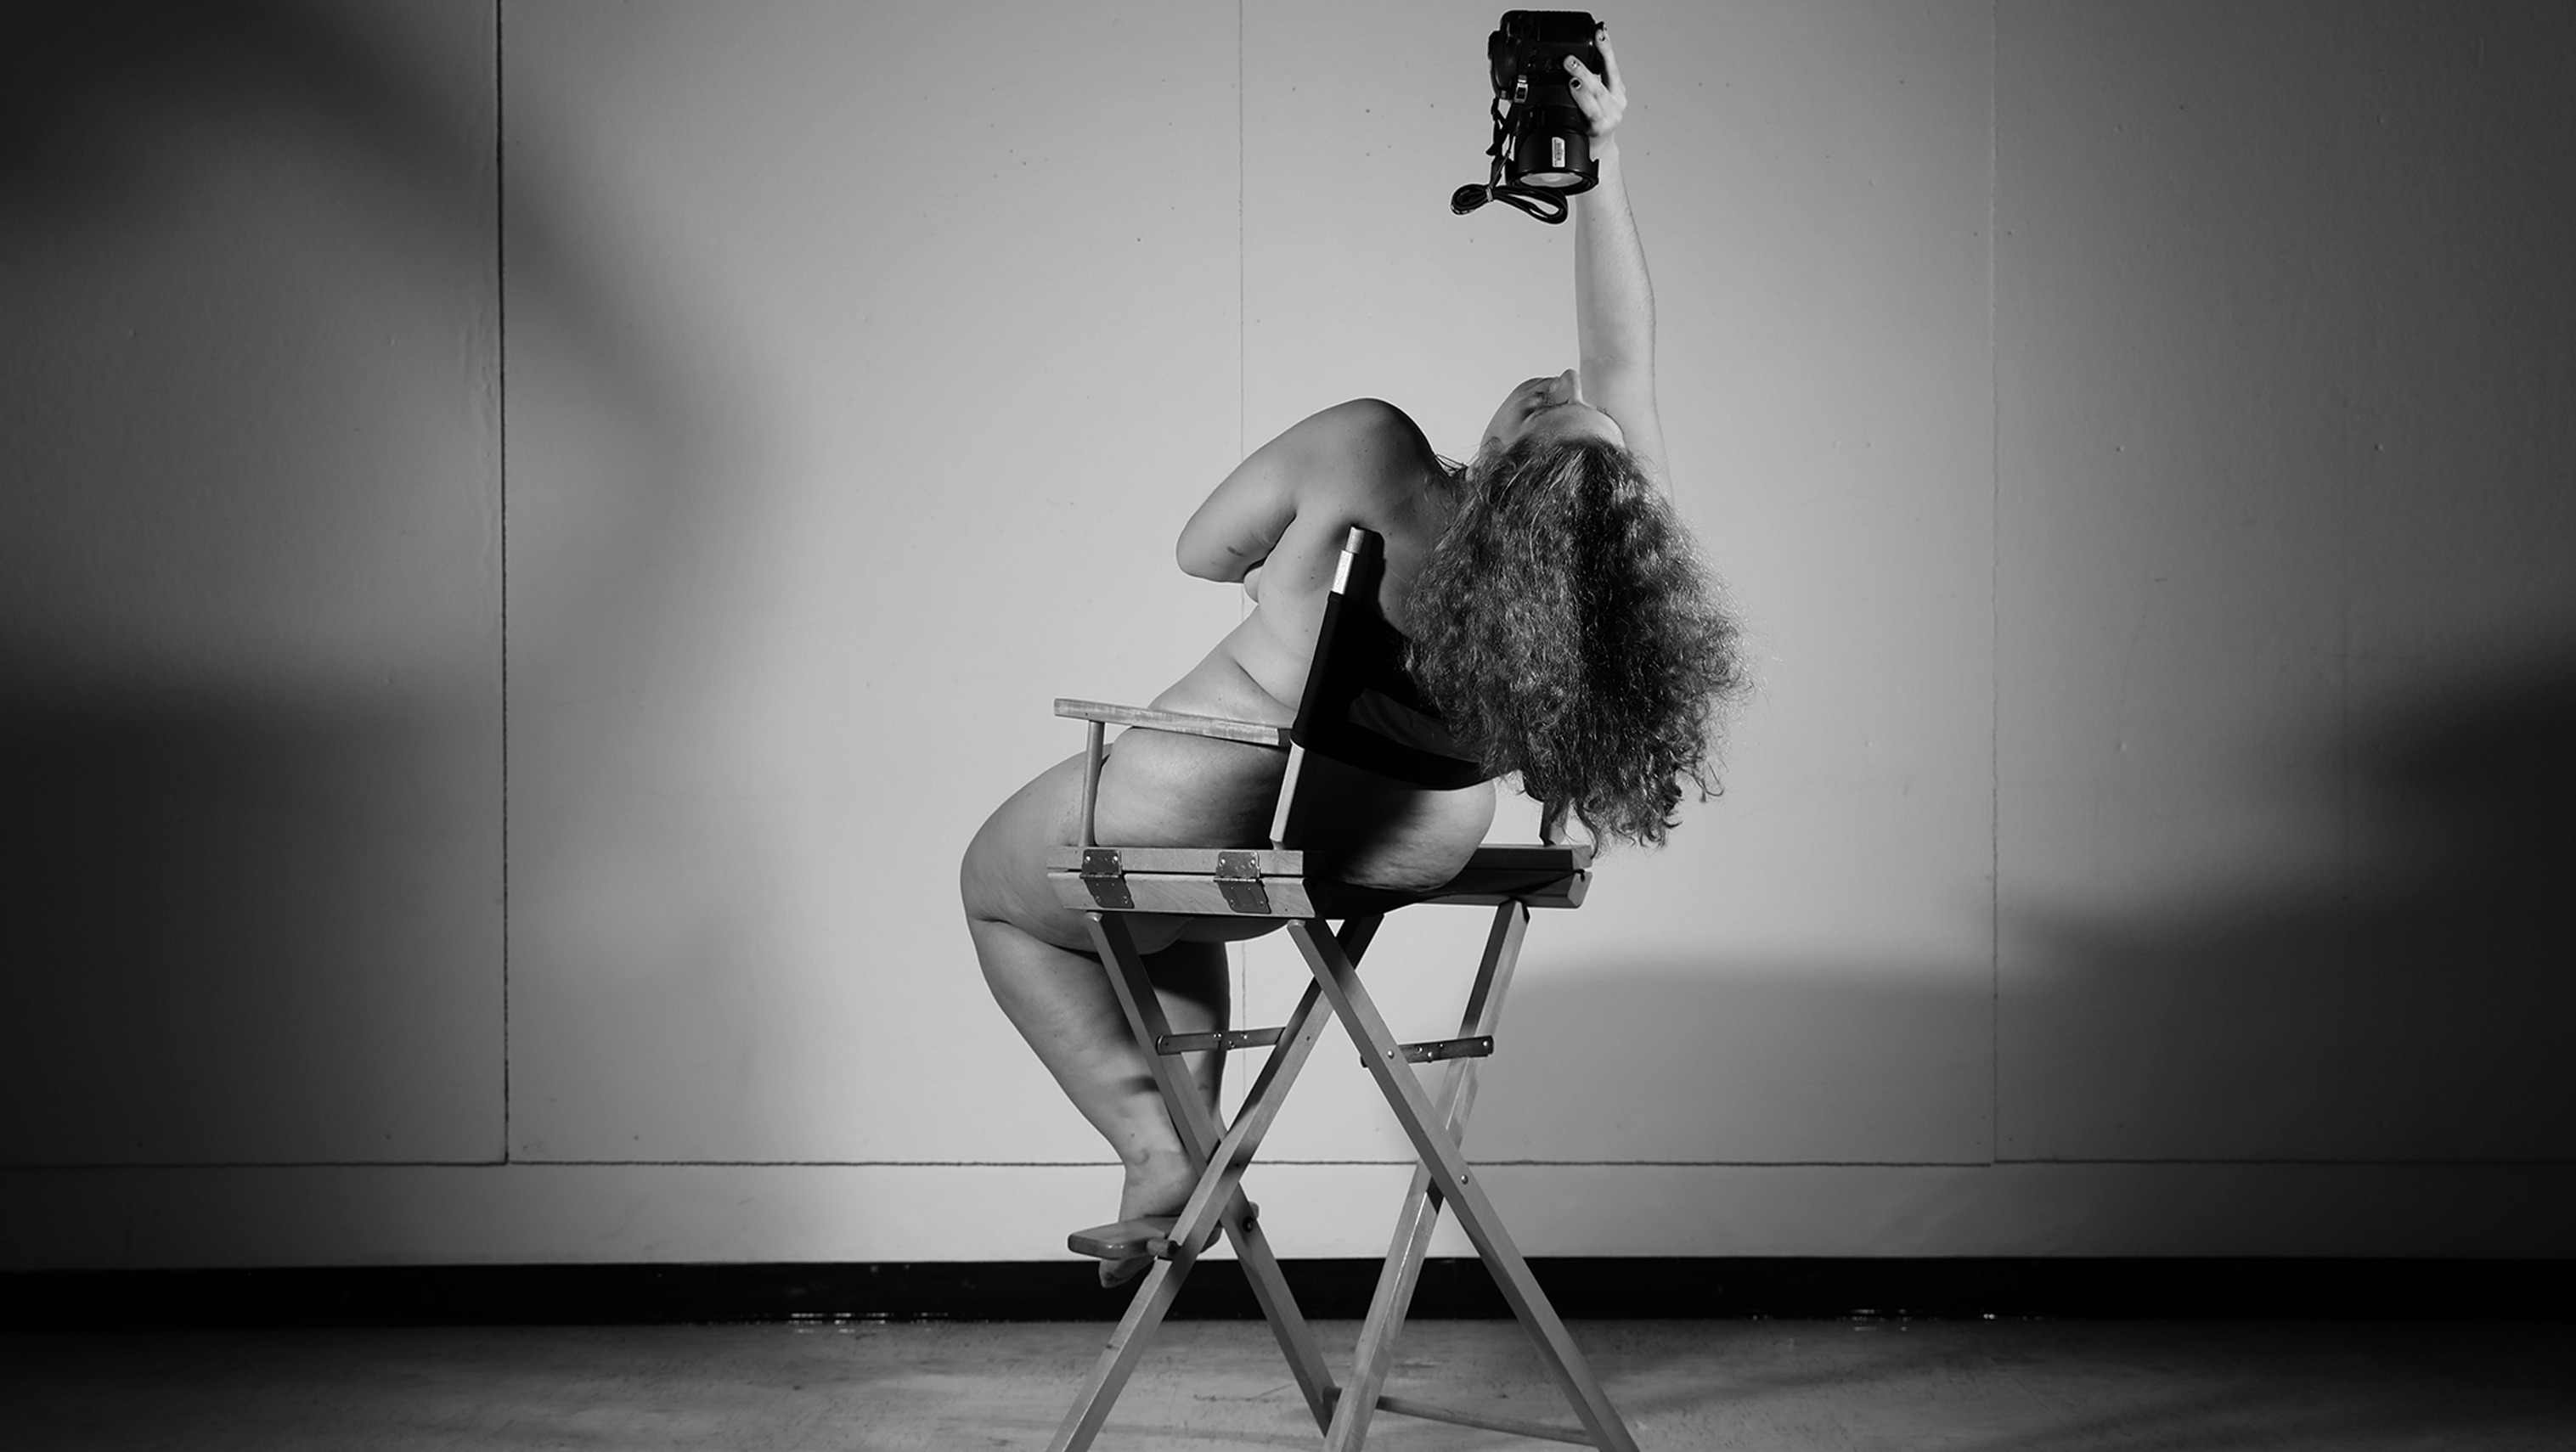 woman sitting nude on a directors chair taking a selfie with camera positioned above.